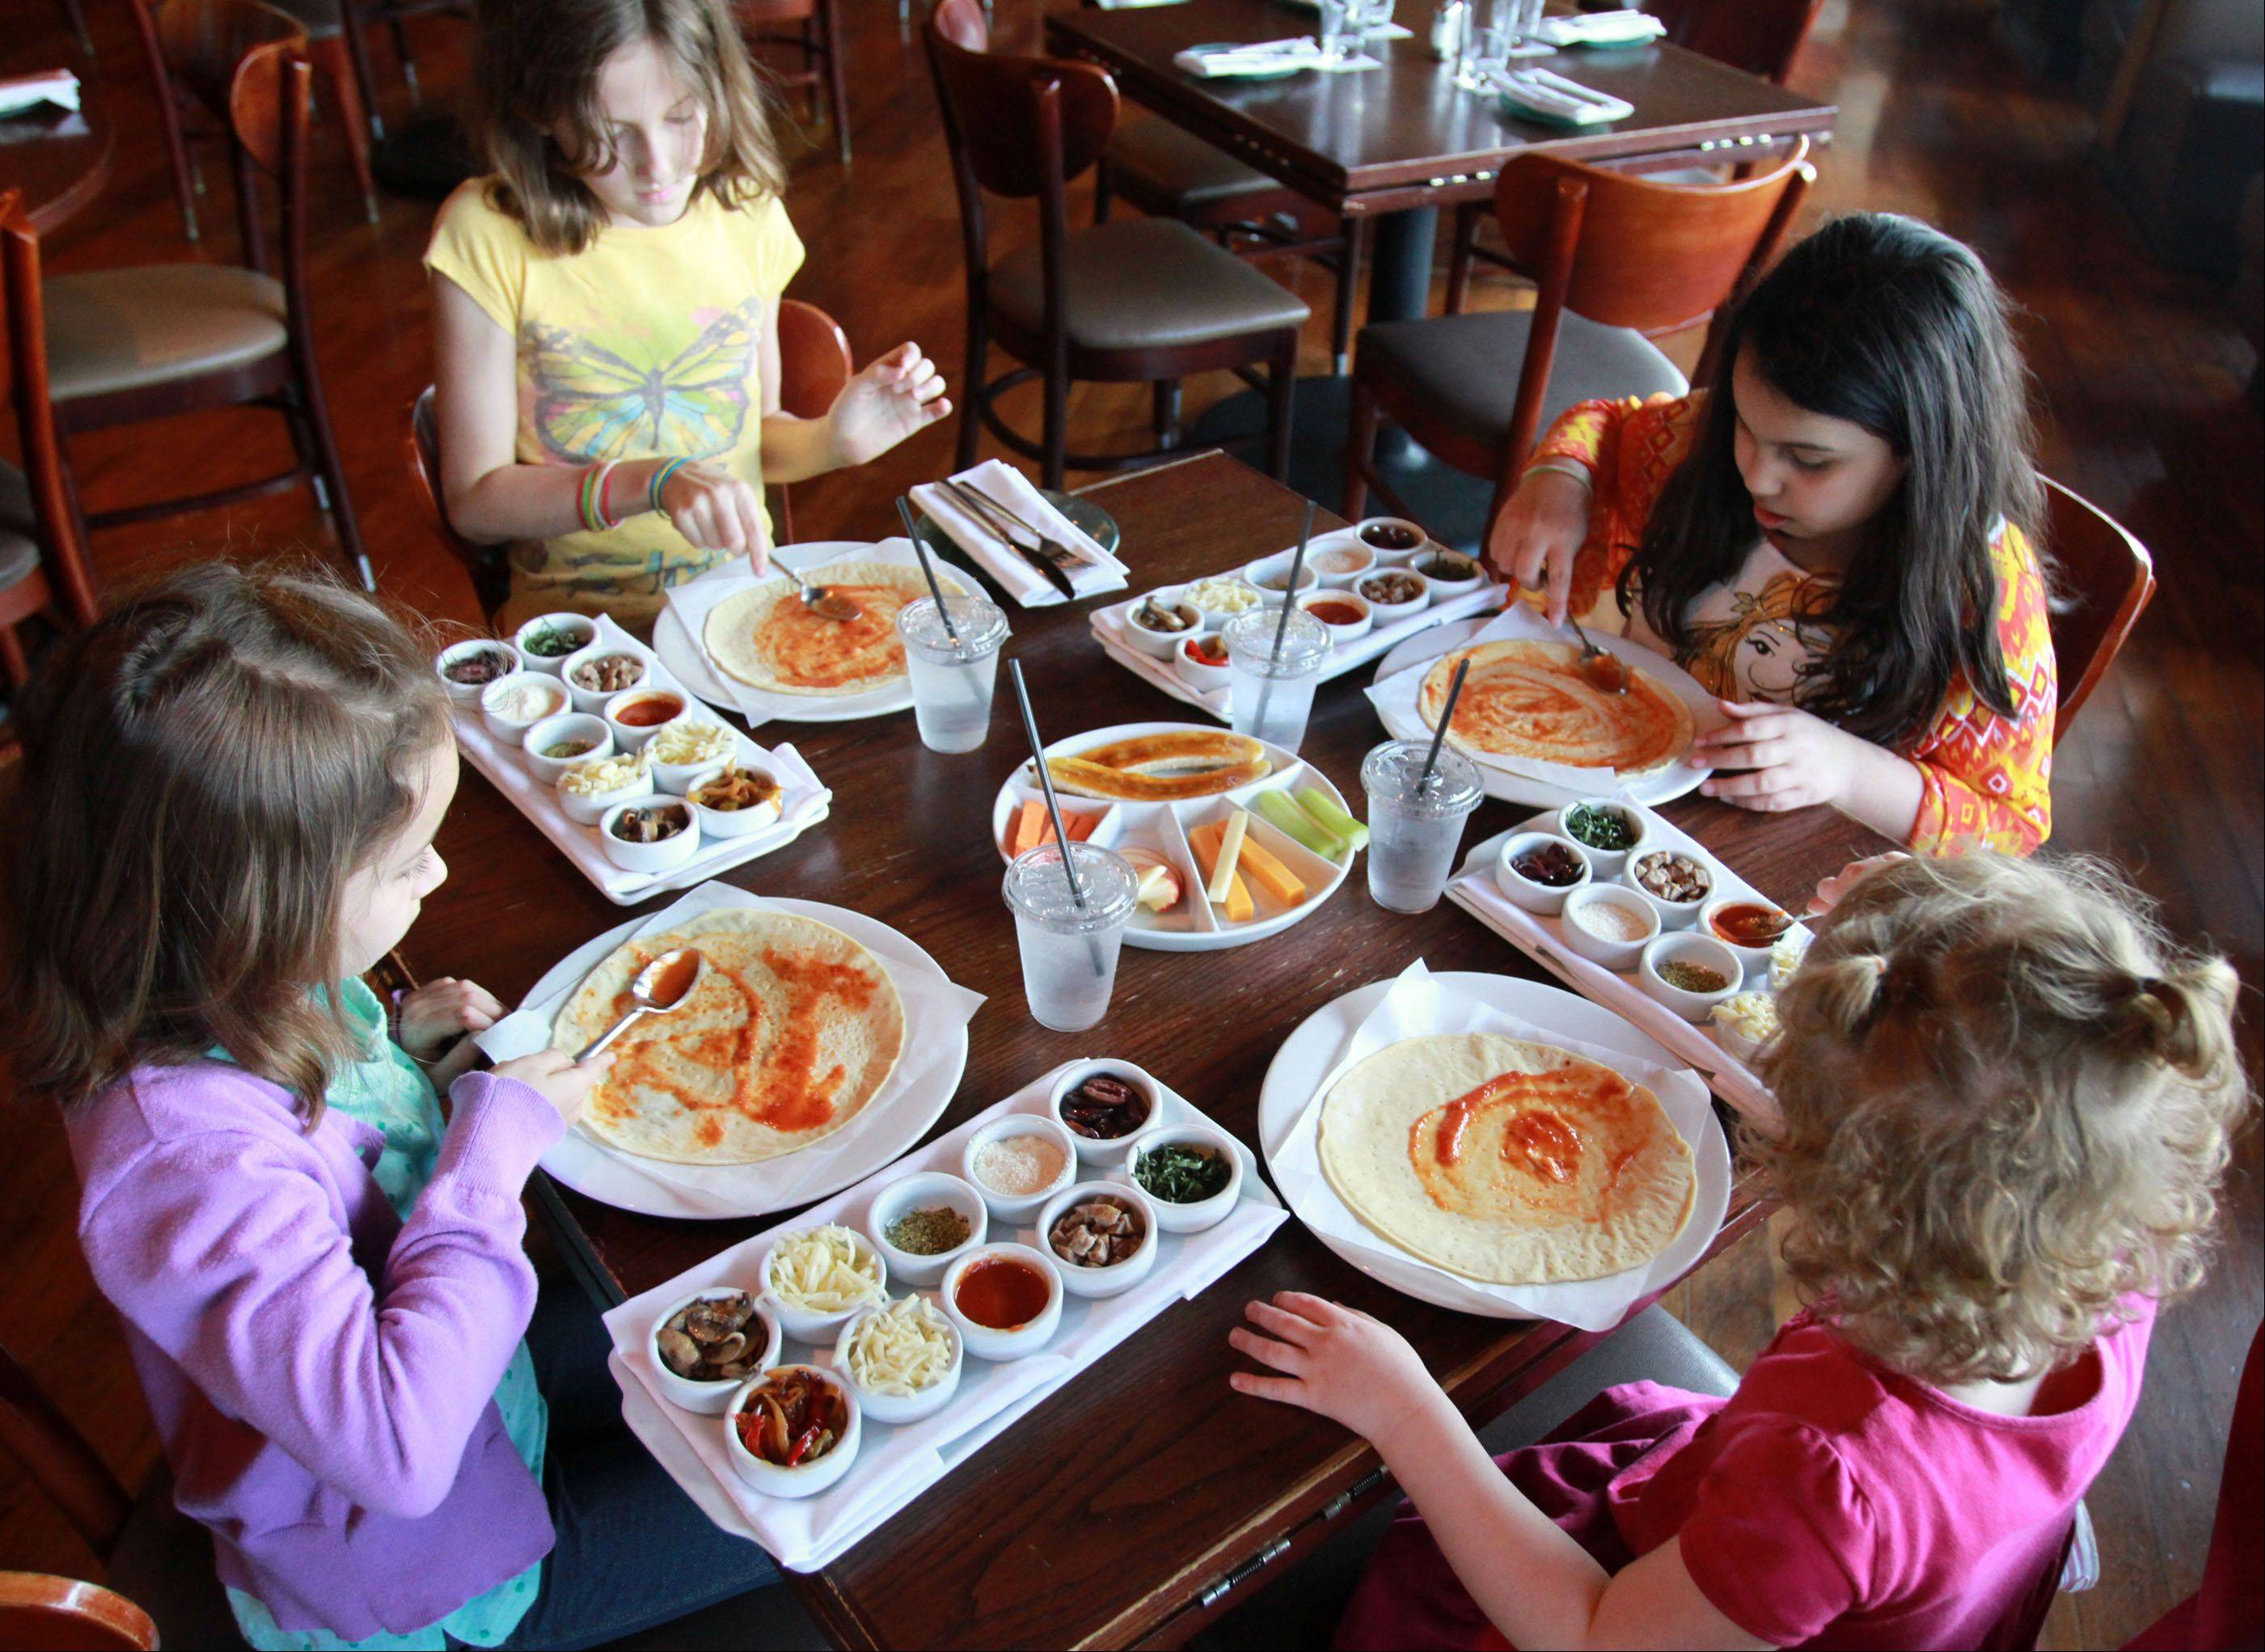 "Helena Samson, 6, of Northbrook, at left then clockwise, Kaya Booth, 9, Jaya Nambiar, 9, both of Wilmette, and Olicia Samson, 3, of Northbrook make healthy pizzas for themselves at Prairie Grass Cafe in Northbrook on Friday, April 26. The pizza making was hosted by Sarah Stegner, co-chef and co-owner, who is one of the founding members of the ""Healthy Fare for Kids"" initiative, which encourages restaurants to offer healthier food for children."